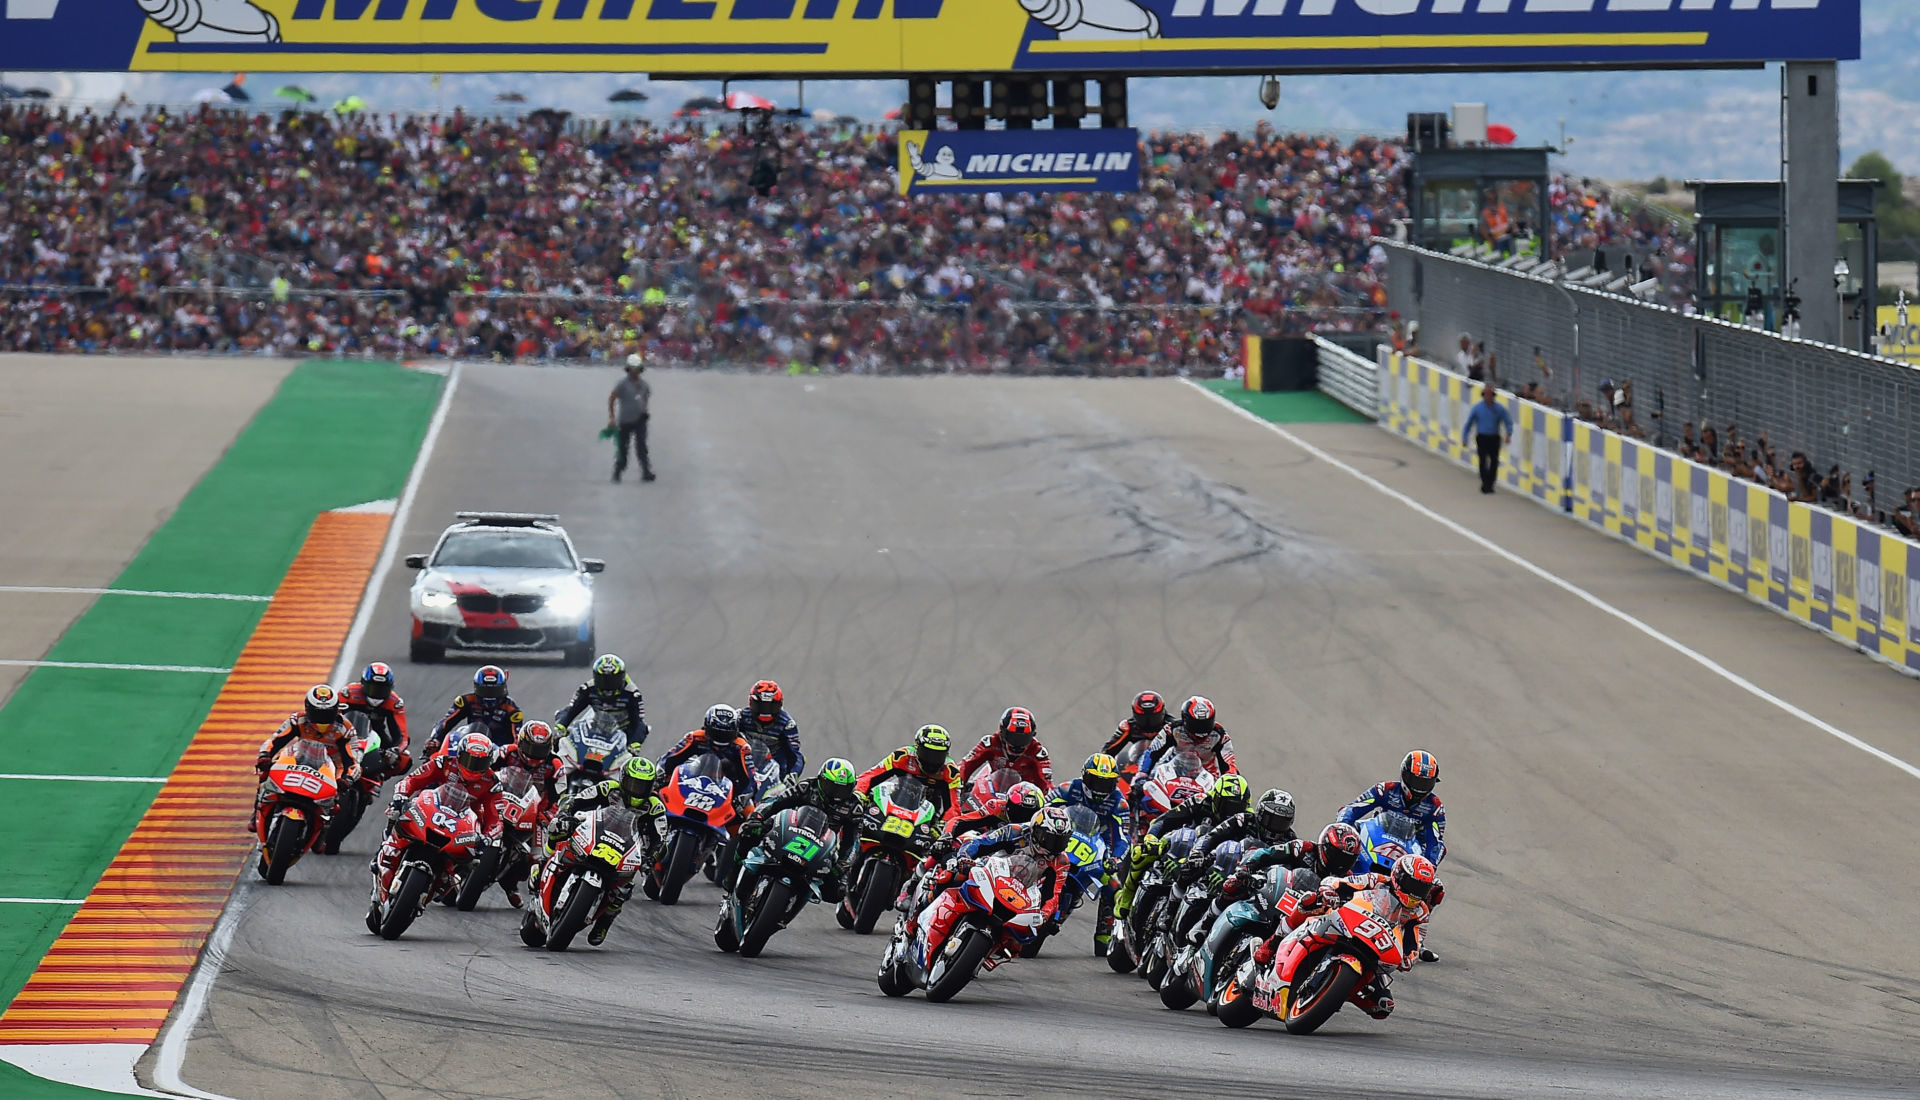 The start of the MotoGP race at Motorland Aragon.